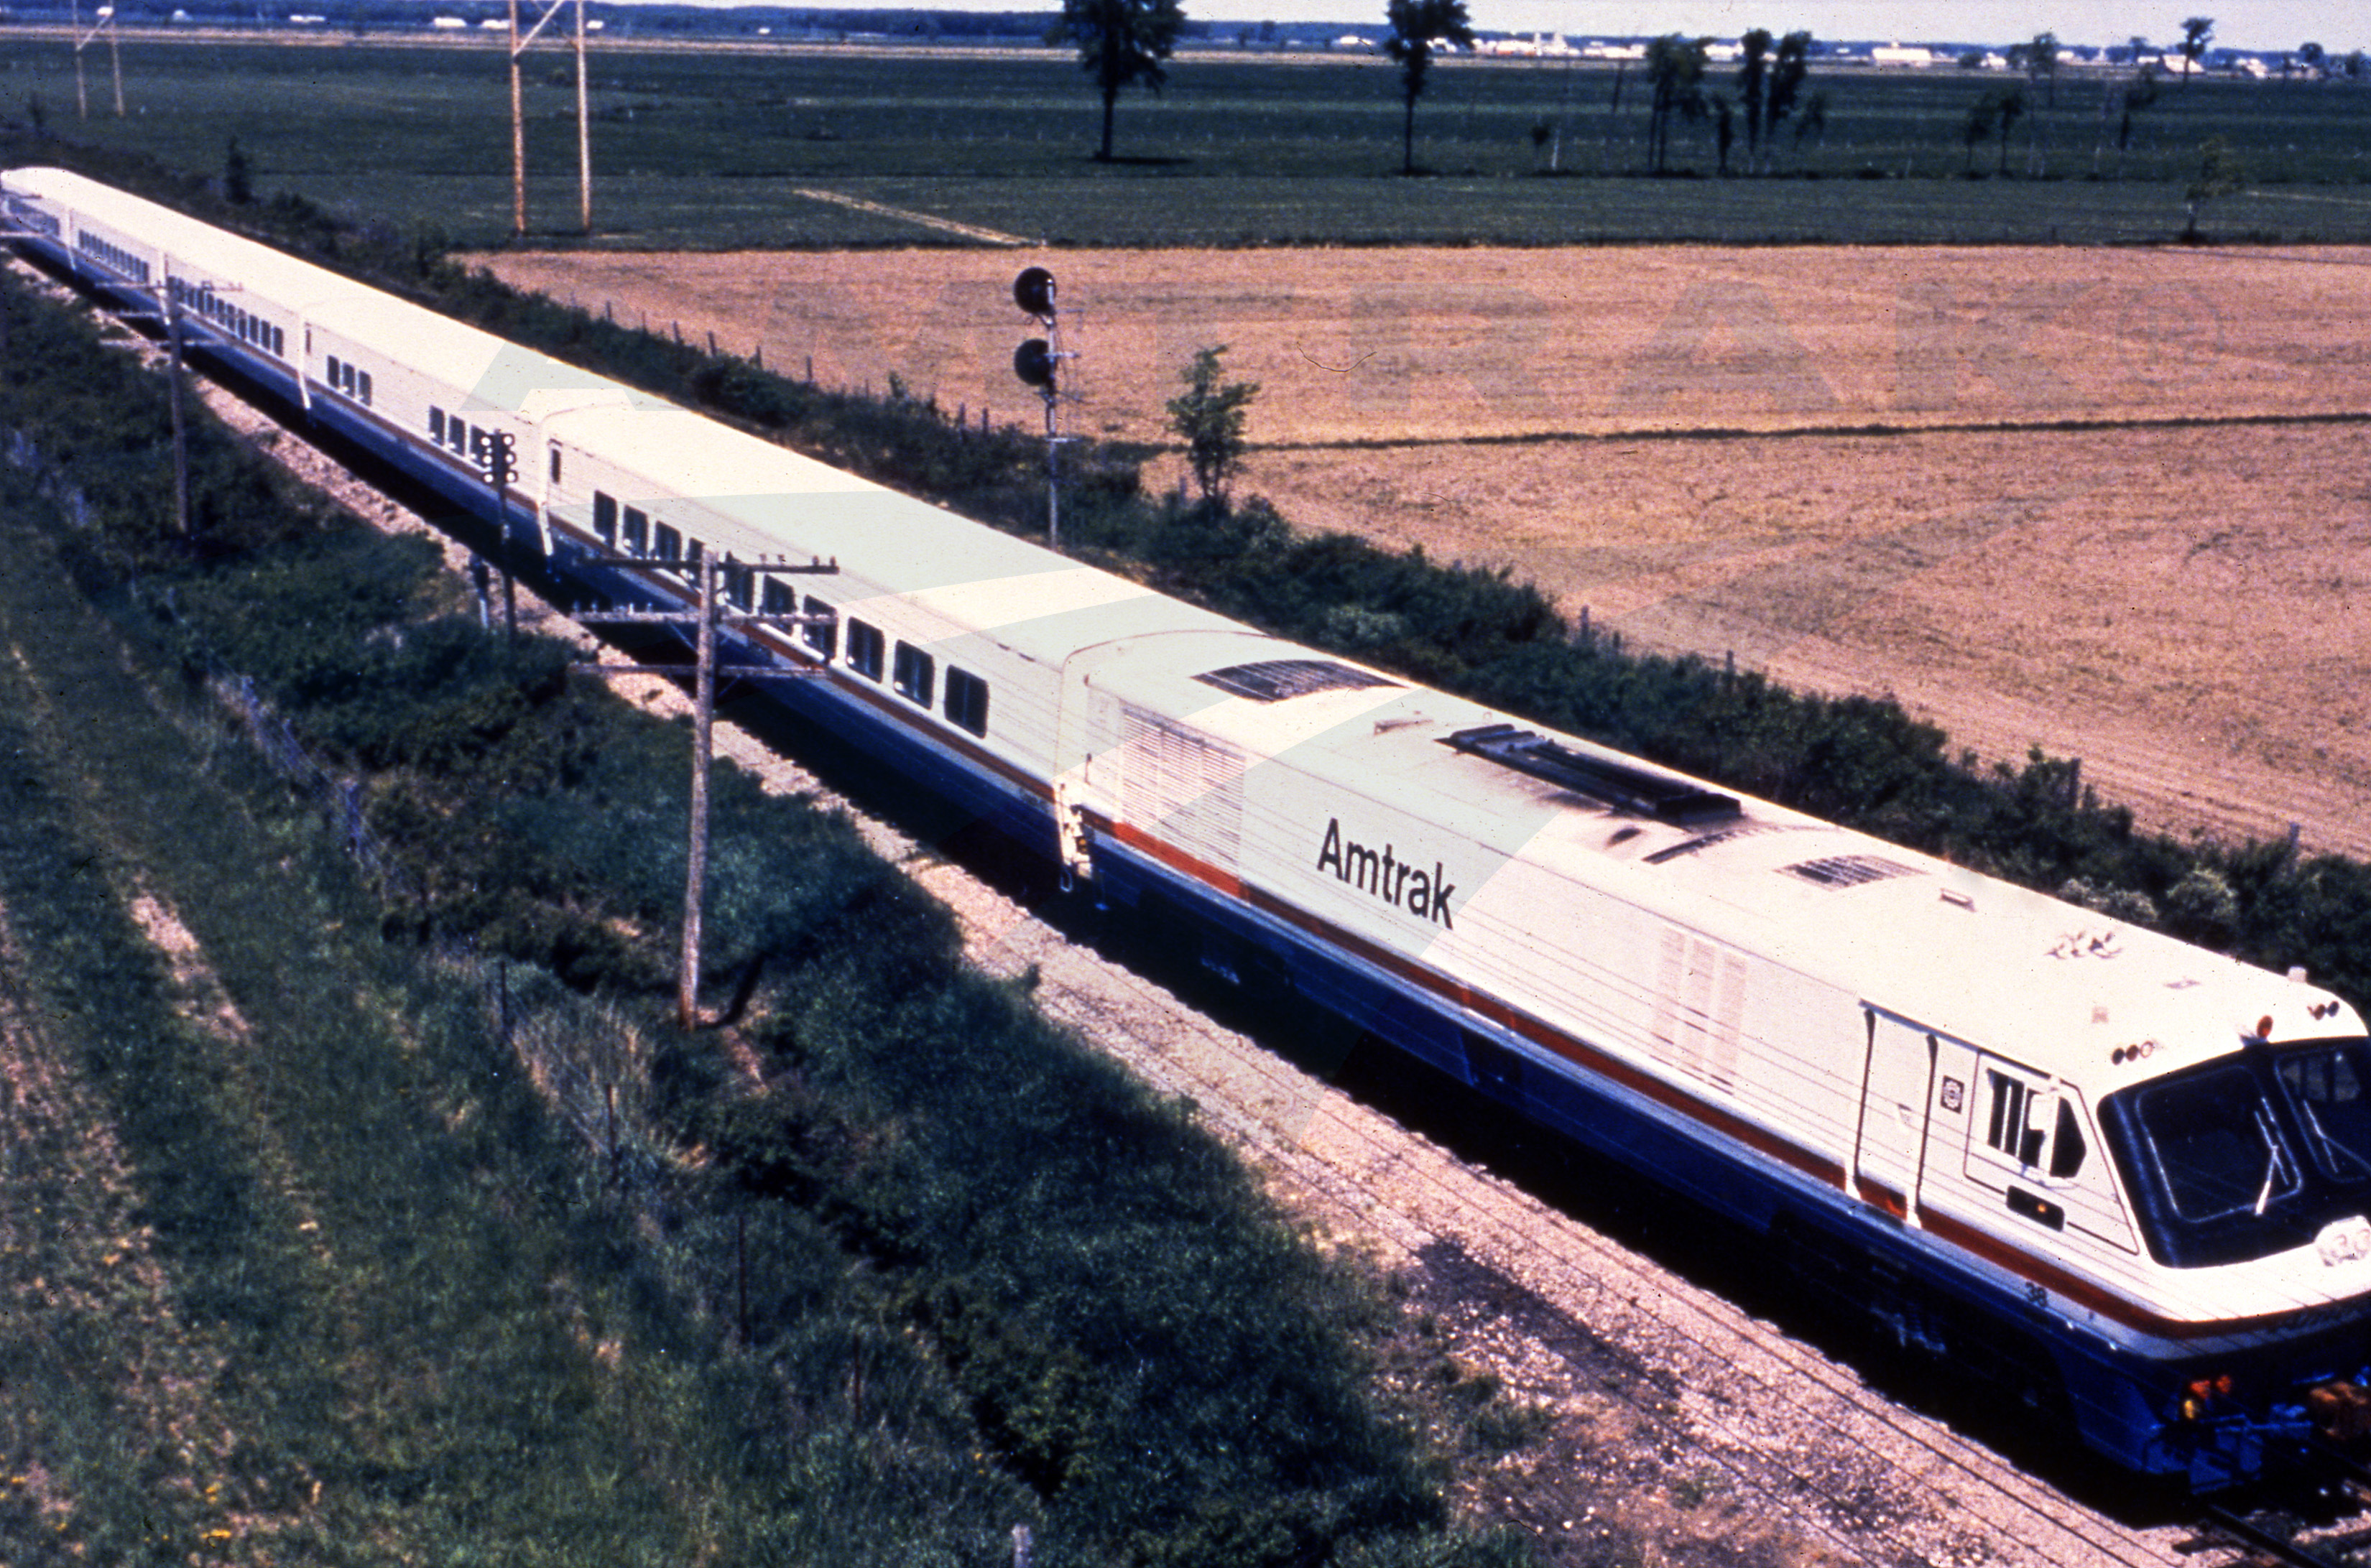 Lrc Train Traveling Through The Countryside 1980s